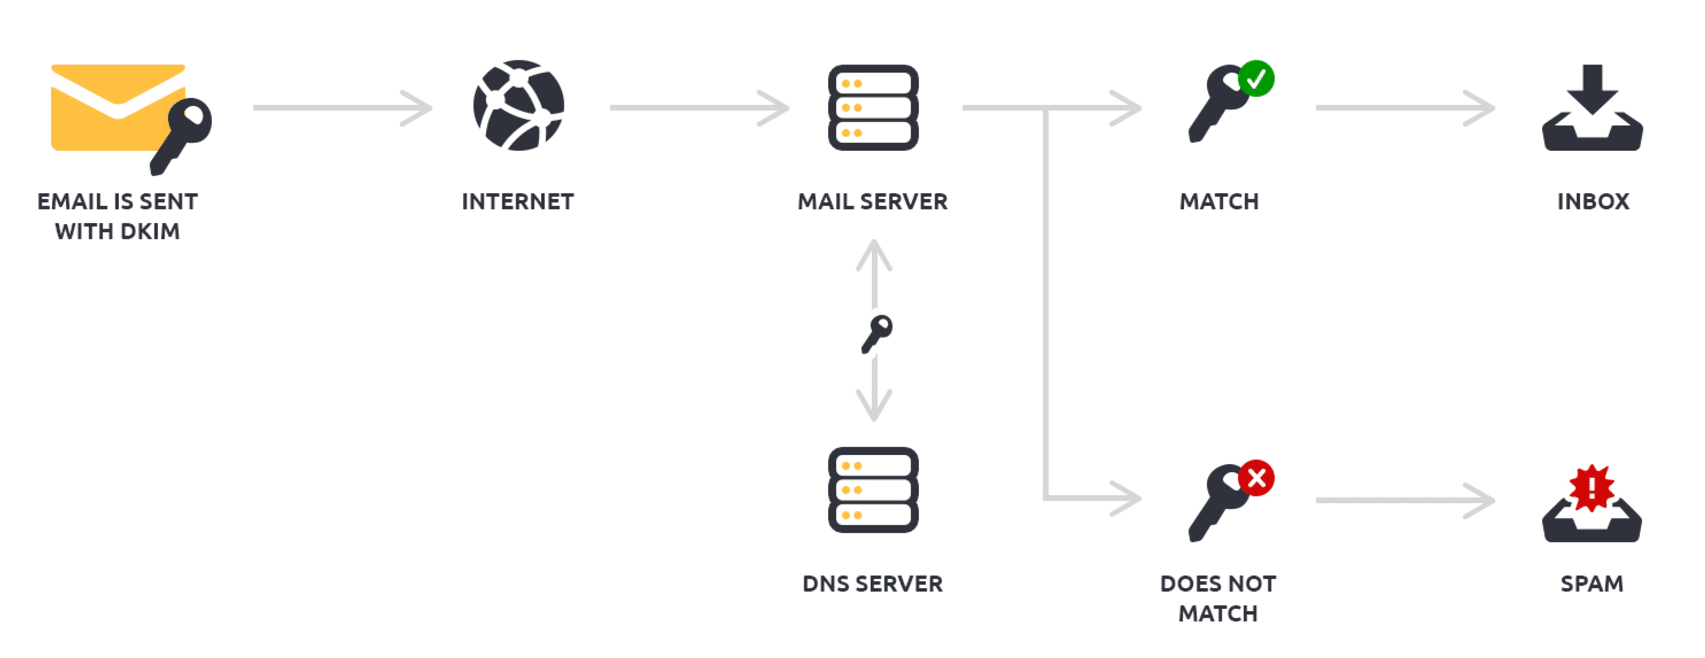 Email Authentication - Don't Let Your Emails End Up in Spam